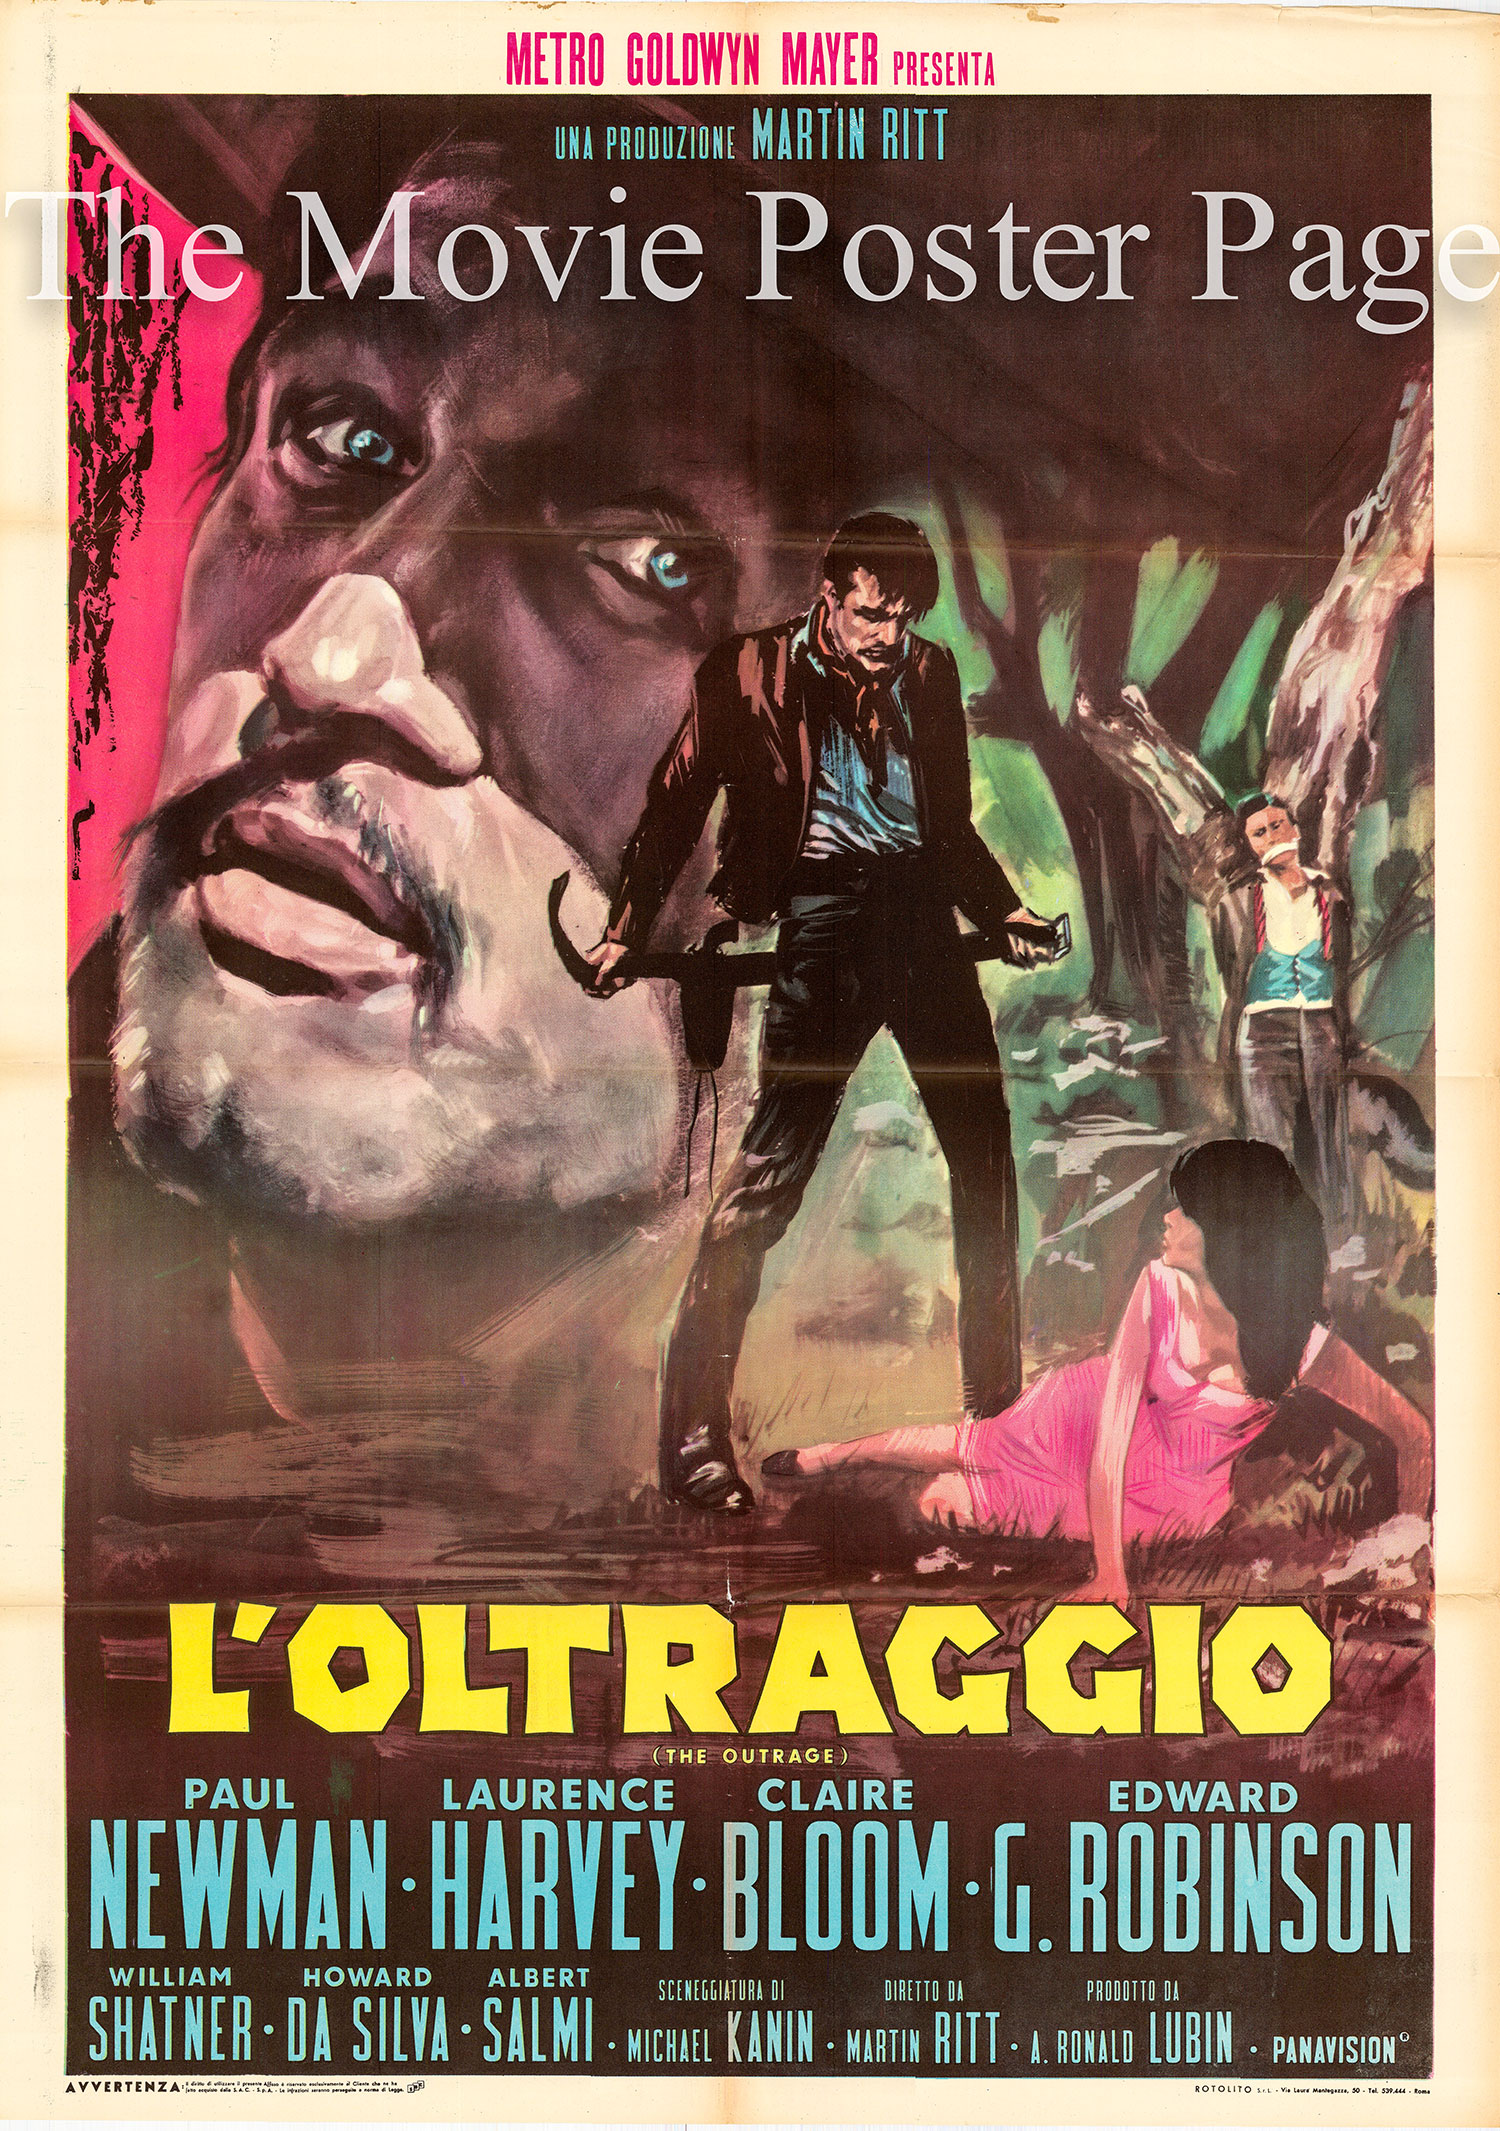 Pictured is an Italian two-sheet promotional poster for the 1964 Martin Ritt film The Outrage starring Paul Newman.